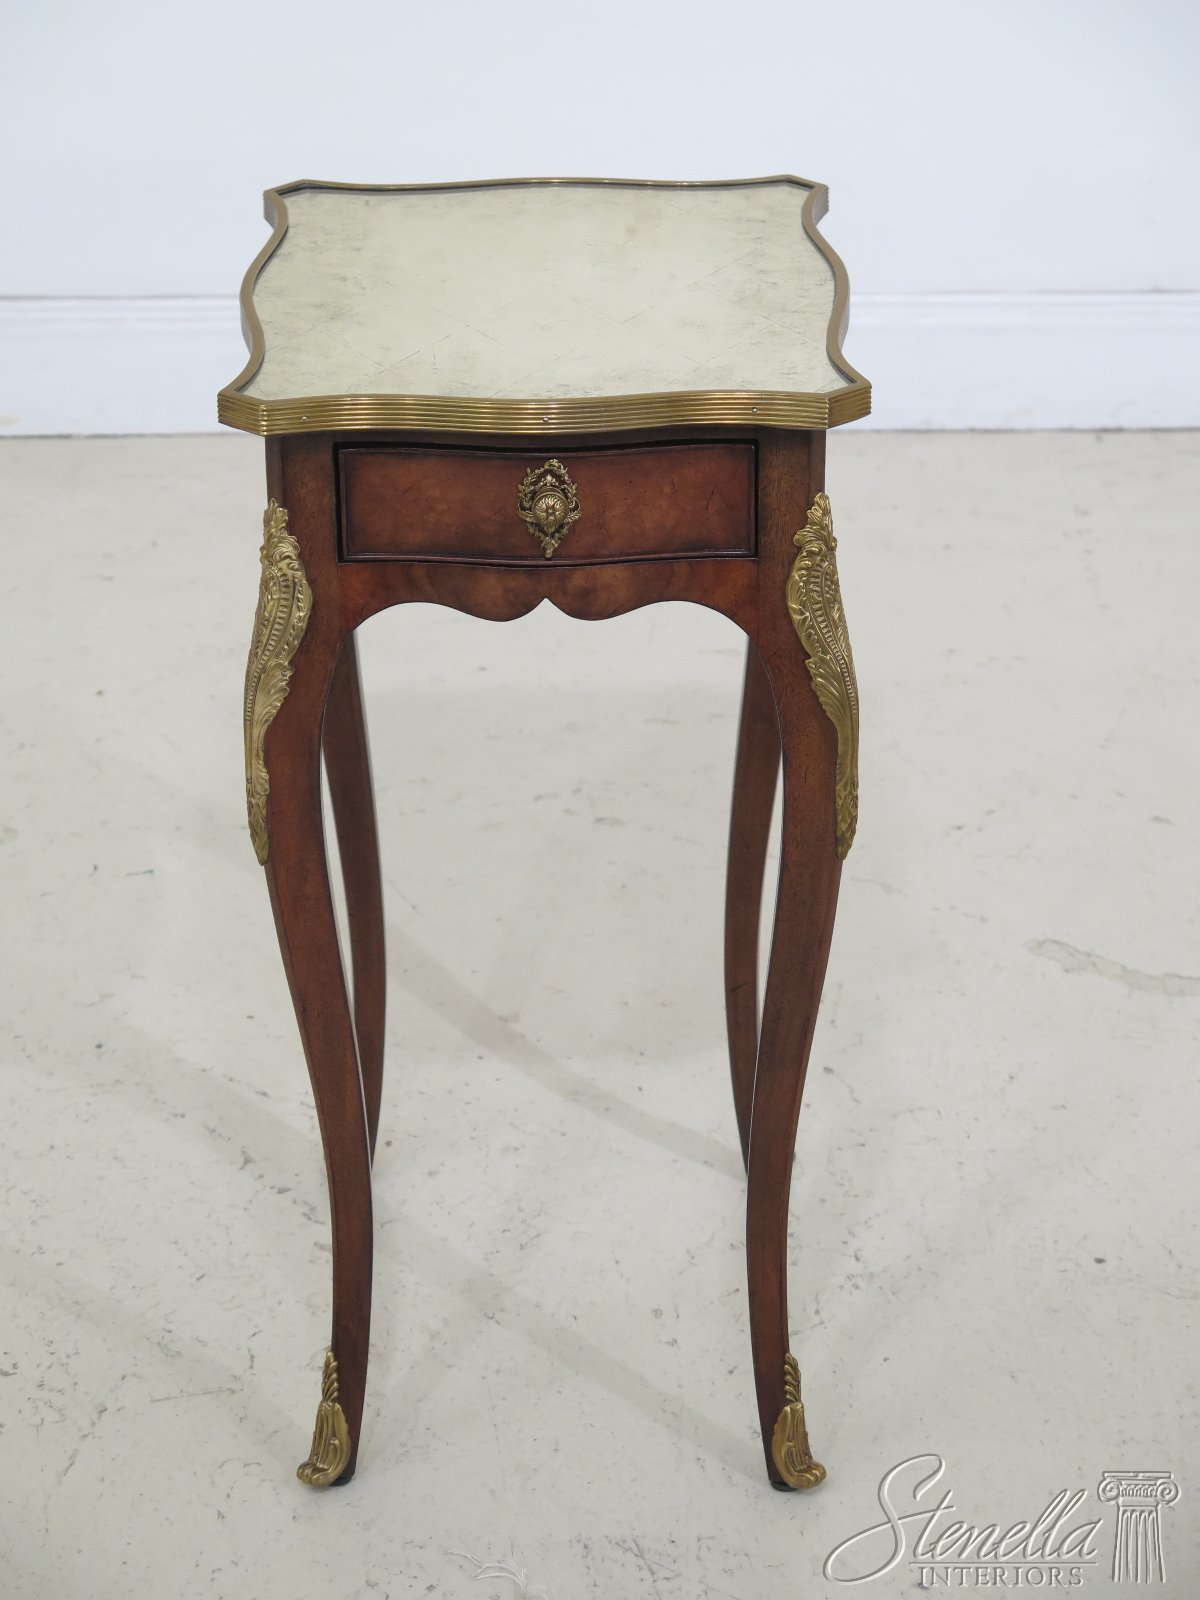 46894ec Theodore Alexander Mirrored Top French 1 Drawer End Table